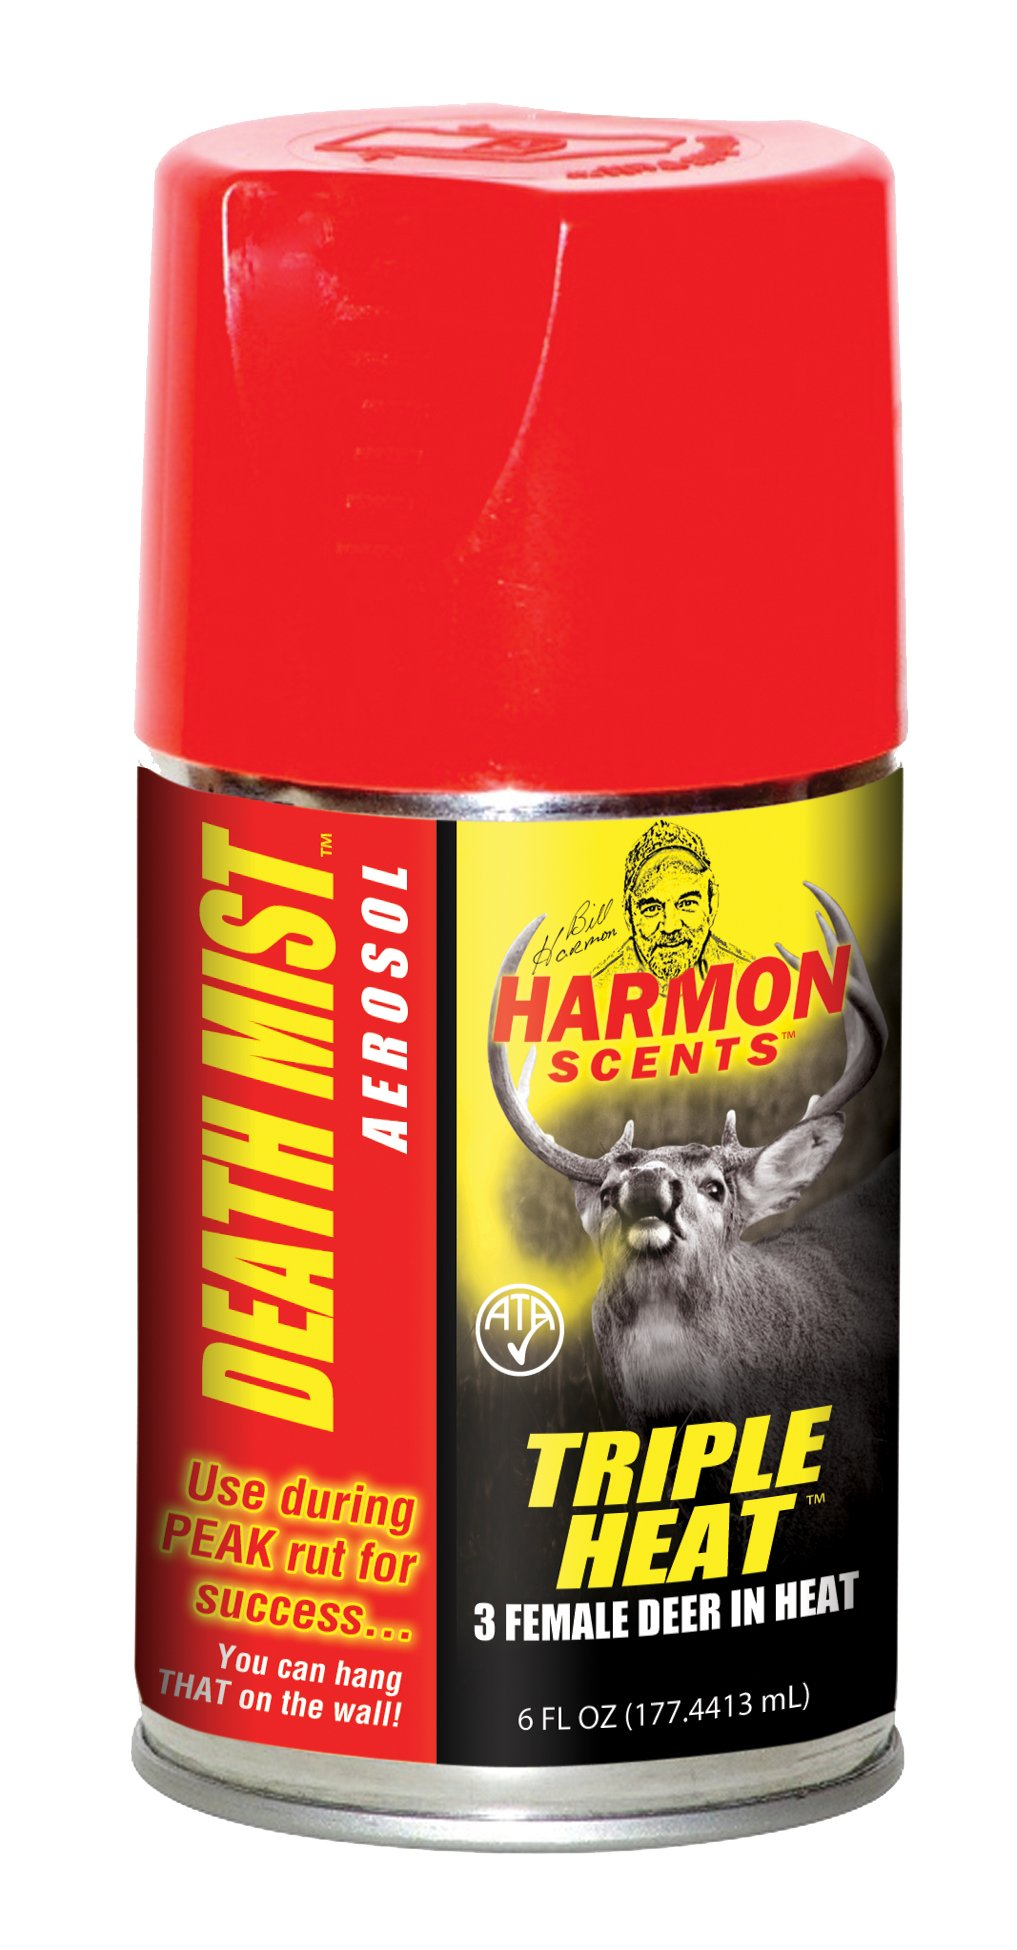 Harmon Scents - Triple Heat Female In Heat Death Mist - HTHDM - Hunting Scents - Aerosol Spray - 6 Ounces - Whitetail Urines - Deer Lure - Whitetail Attractant - Doe Estrous